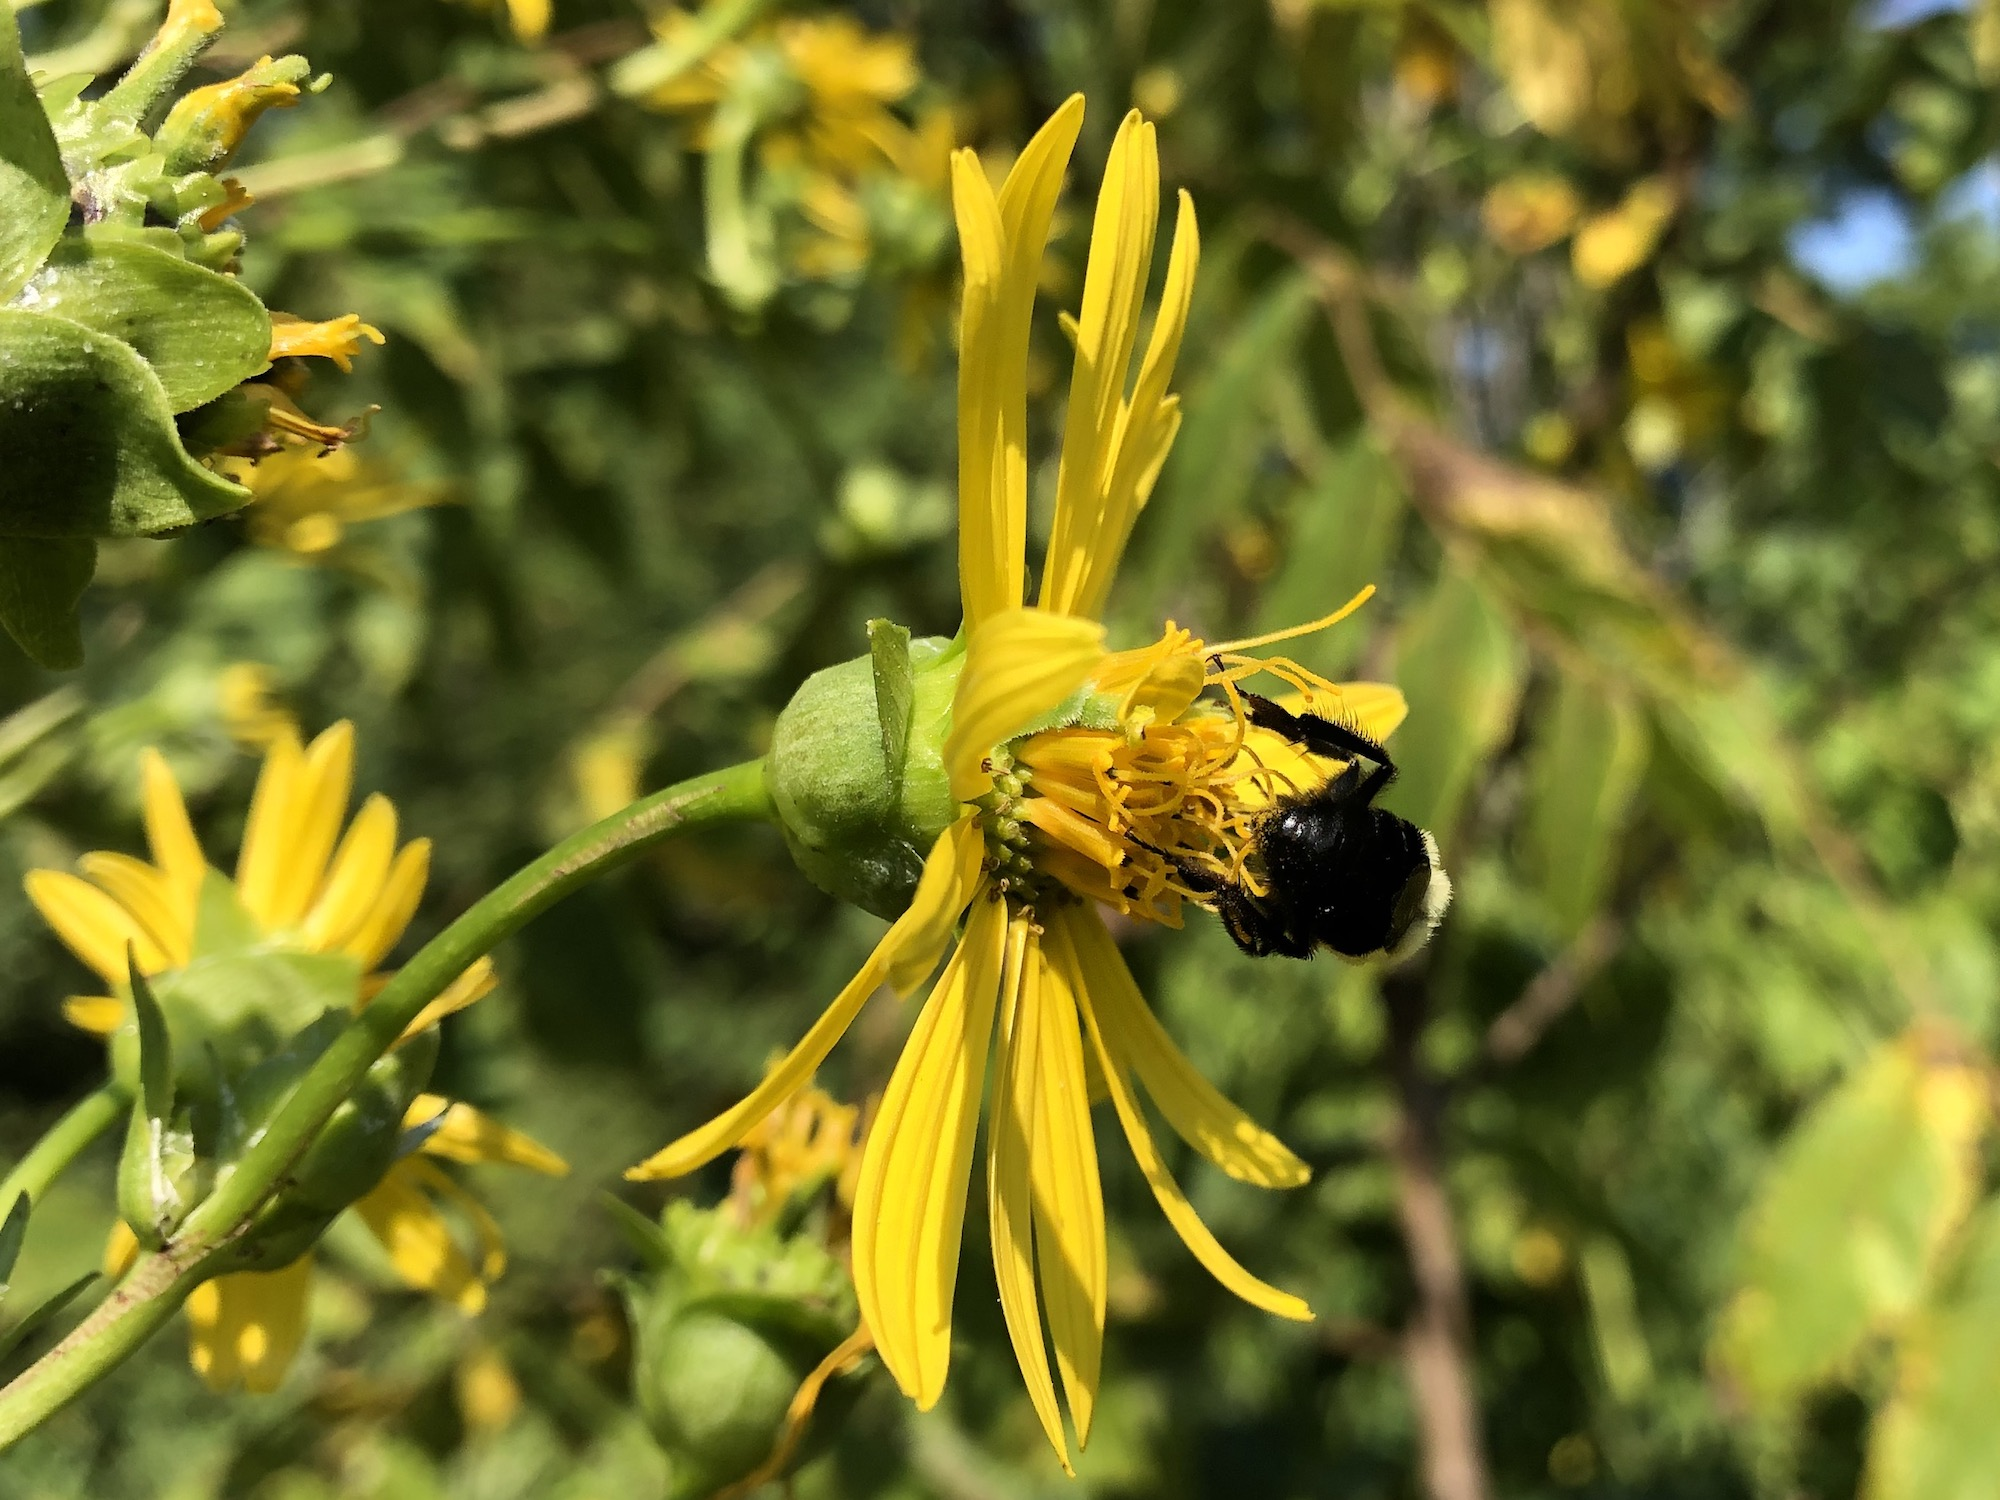 Bumblebee on Cup Plant on bank of Marion Dunn Pond on August 14, 2020.